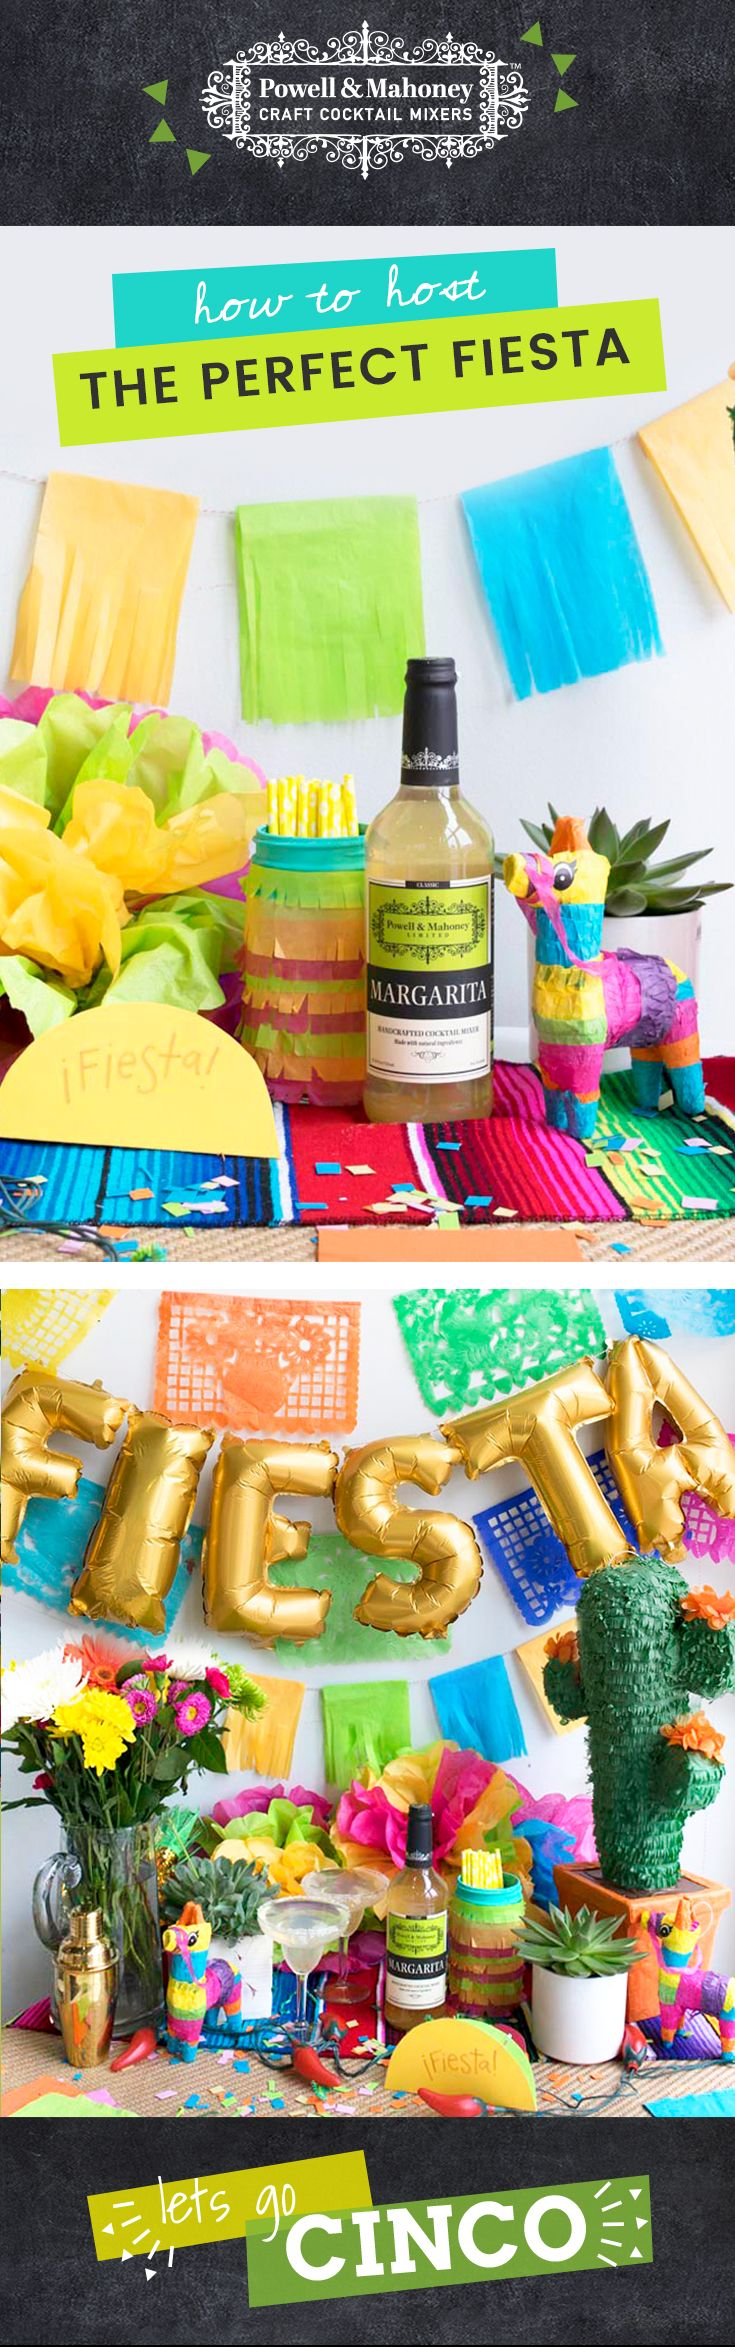 Fiesta table decorations ideas - Throw The Ultimate Fiesta With These Easy Cinco De Mayo Crafts And Table Decorations